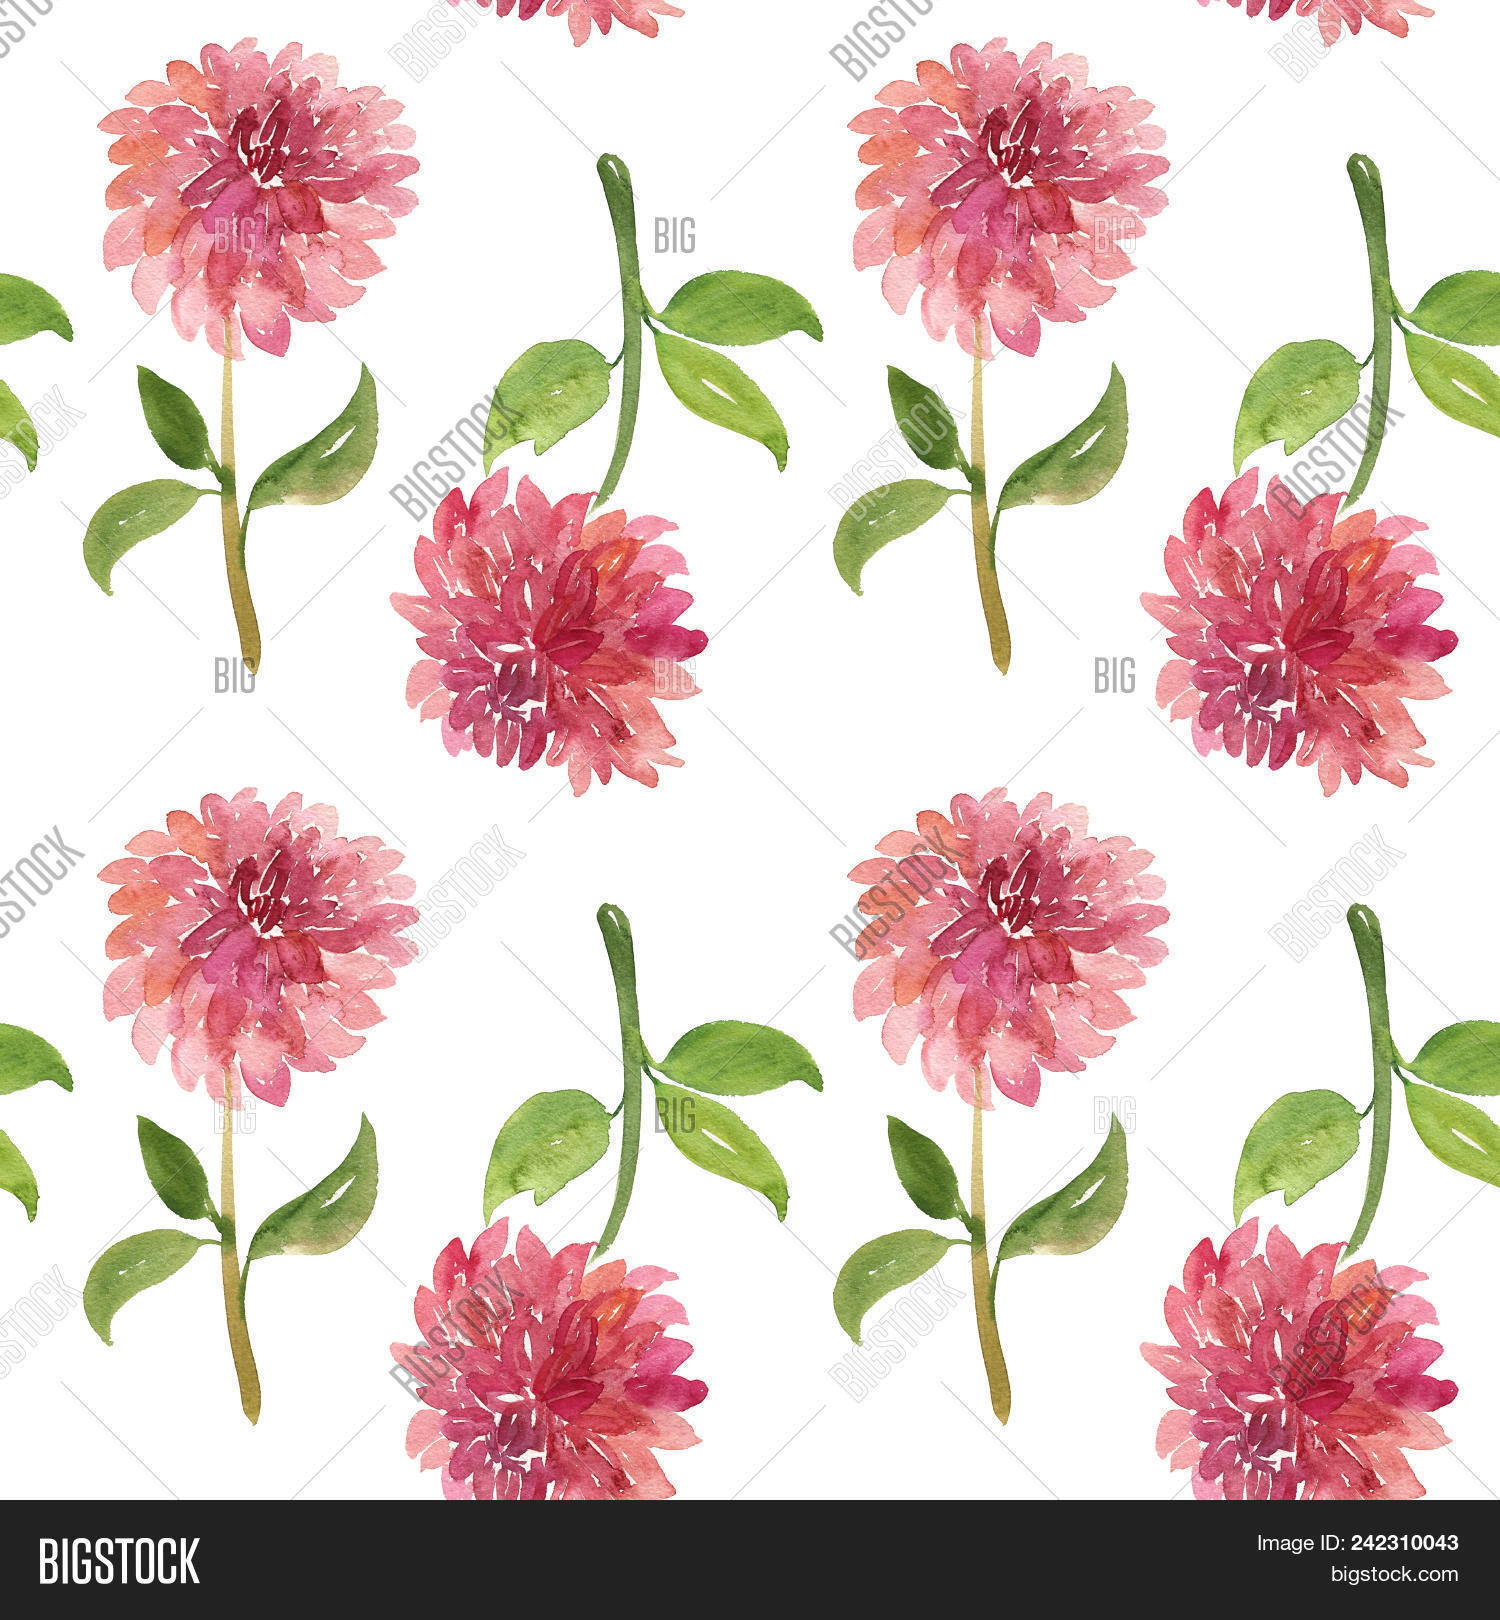 Seamless pattern red image photo free trial bigstock seamless pattern of red watercolor dahlia flowers with stems and leaves on white background red izmirmasajfo